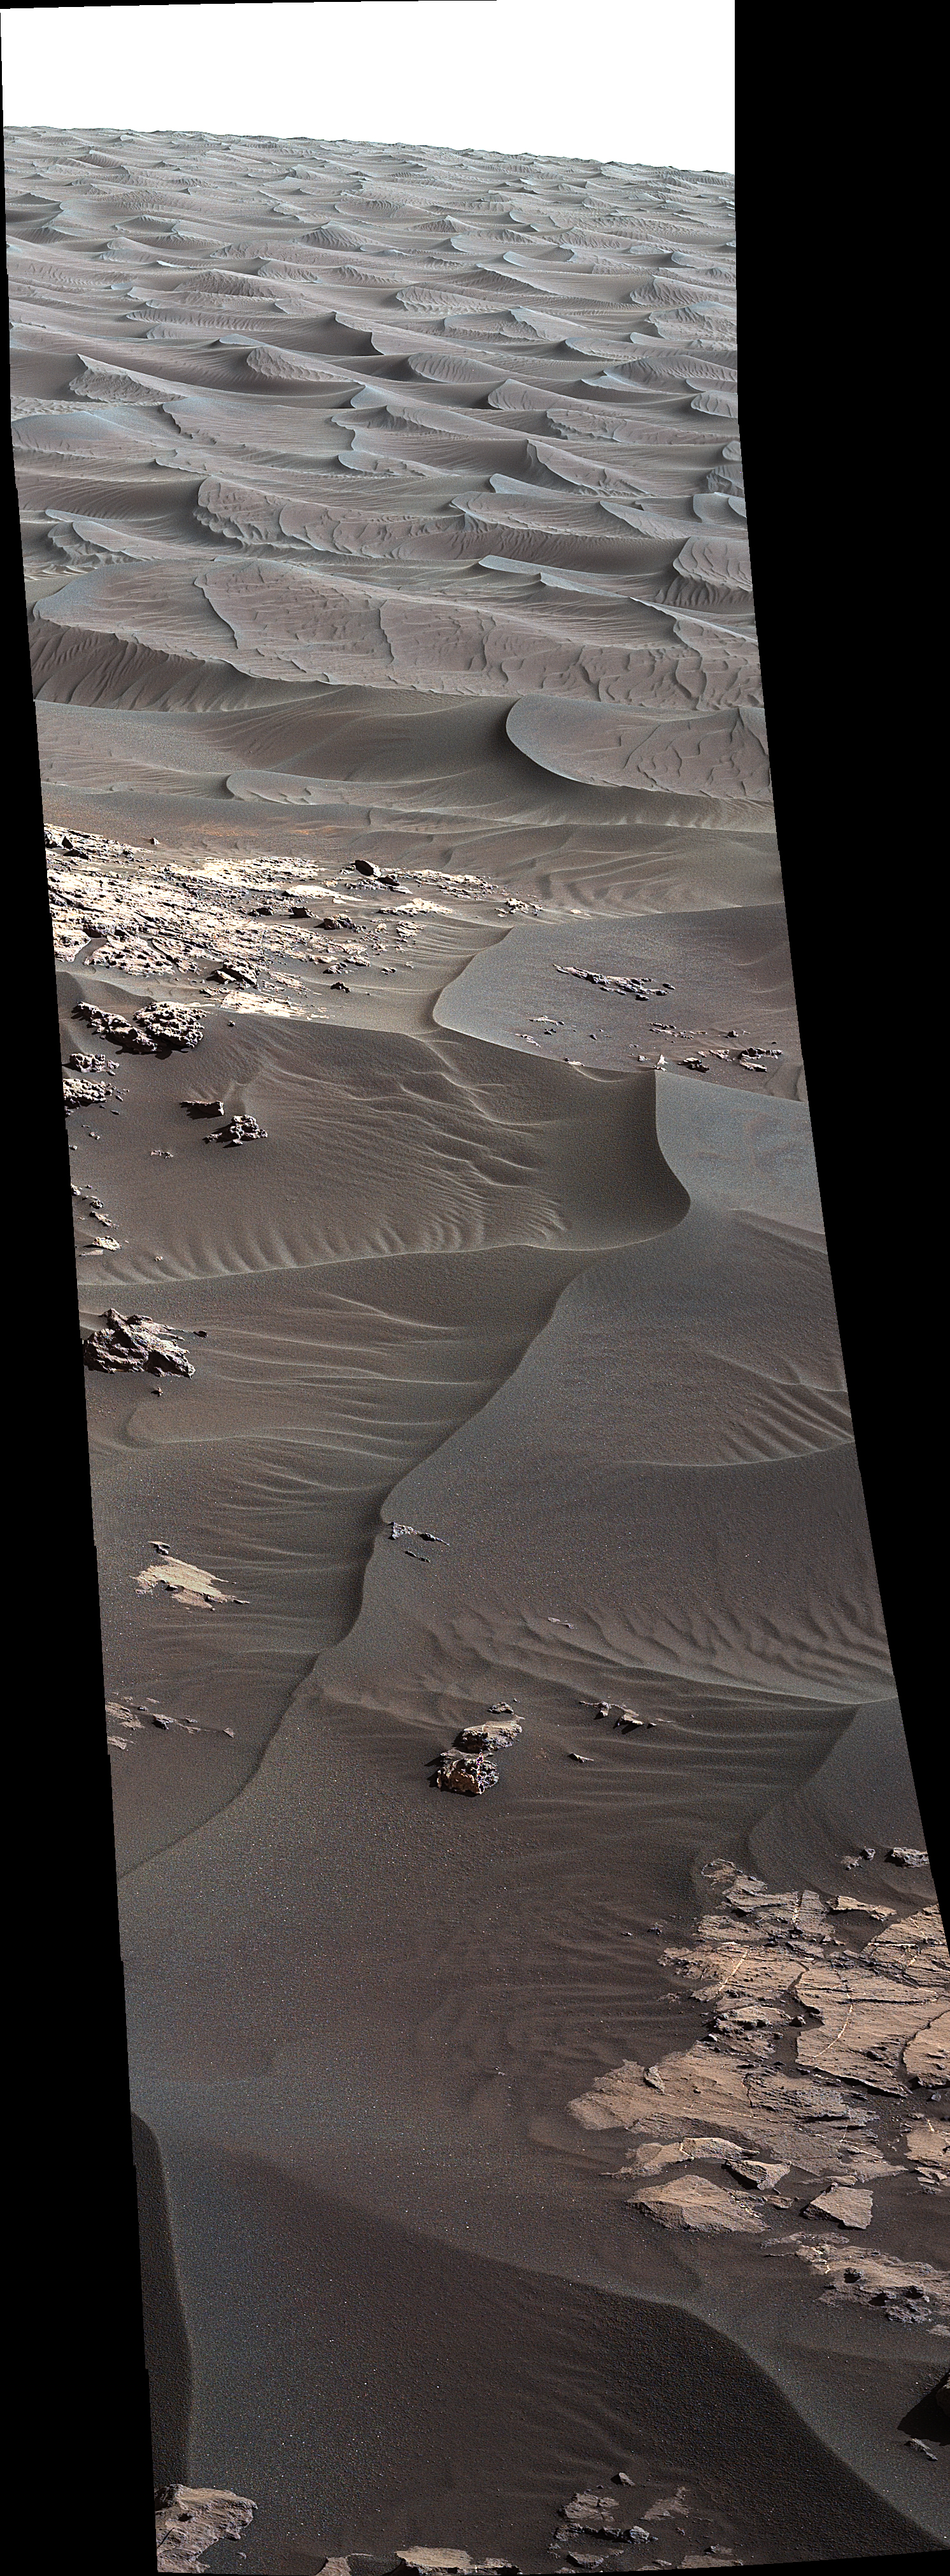 Ripples on Martian sand dunes show signs that wind moves them today, in NASA's first ever close-up view of active sand dunes, seen by Mars rover Curiosity.